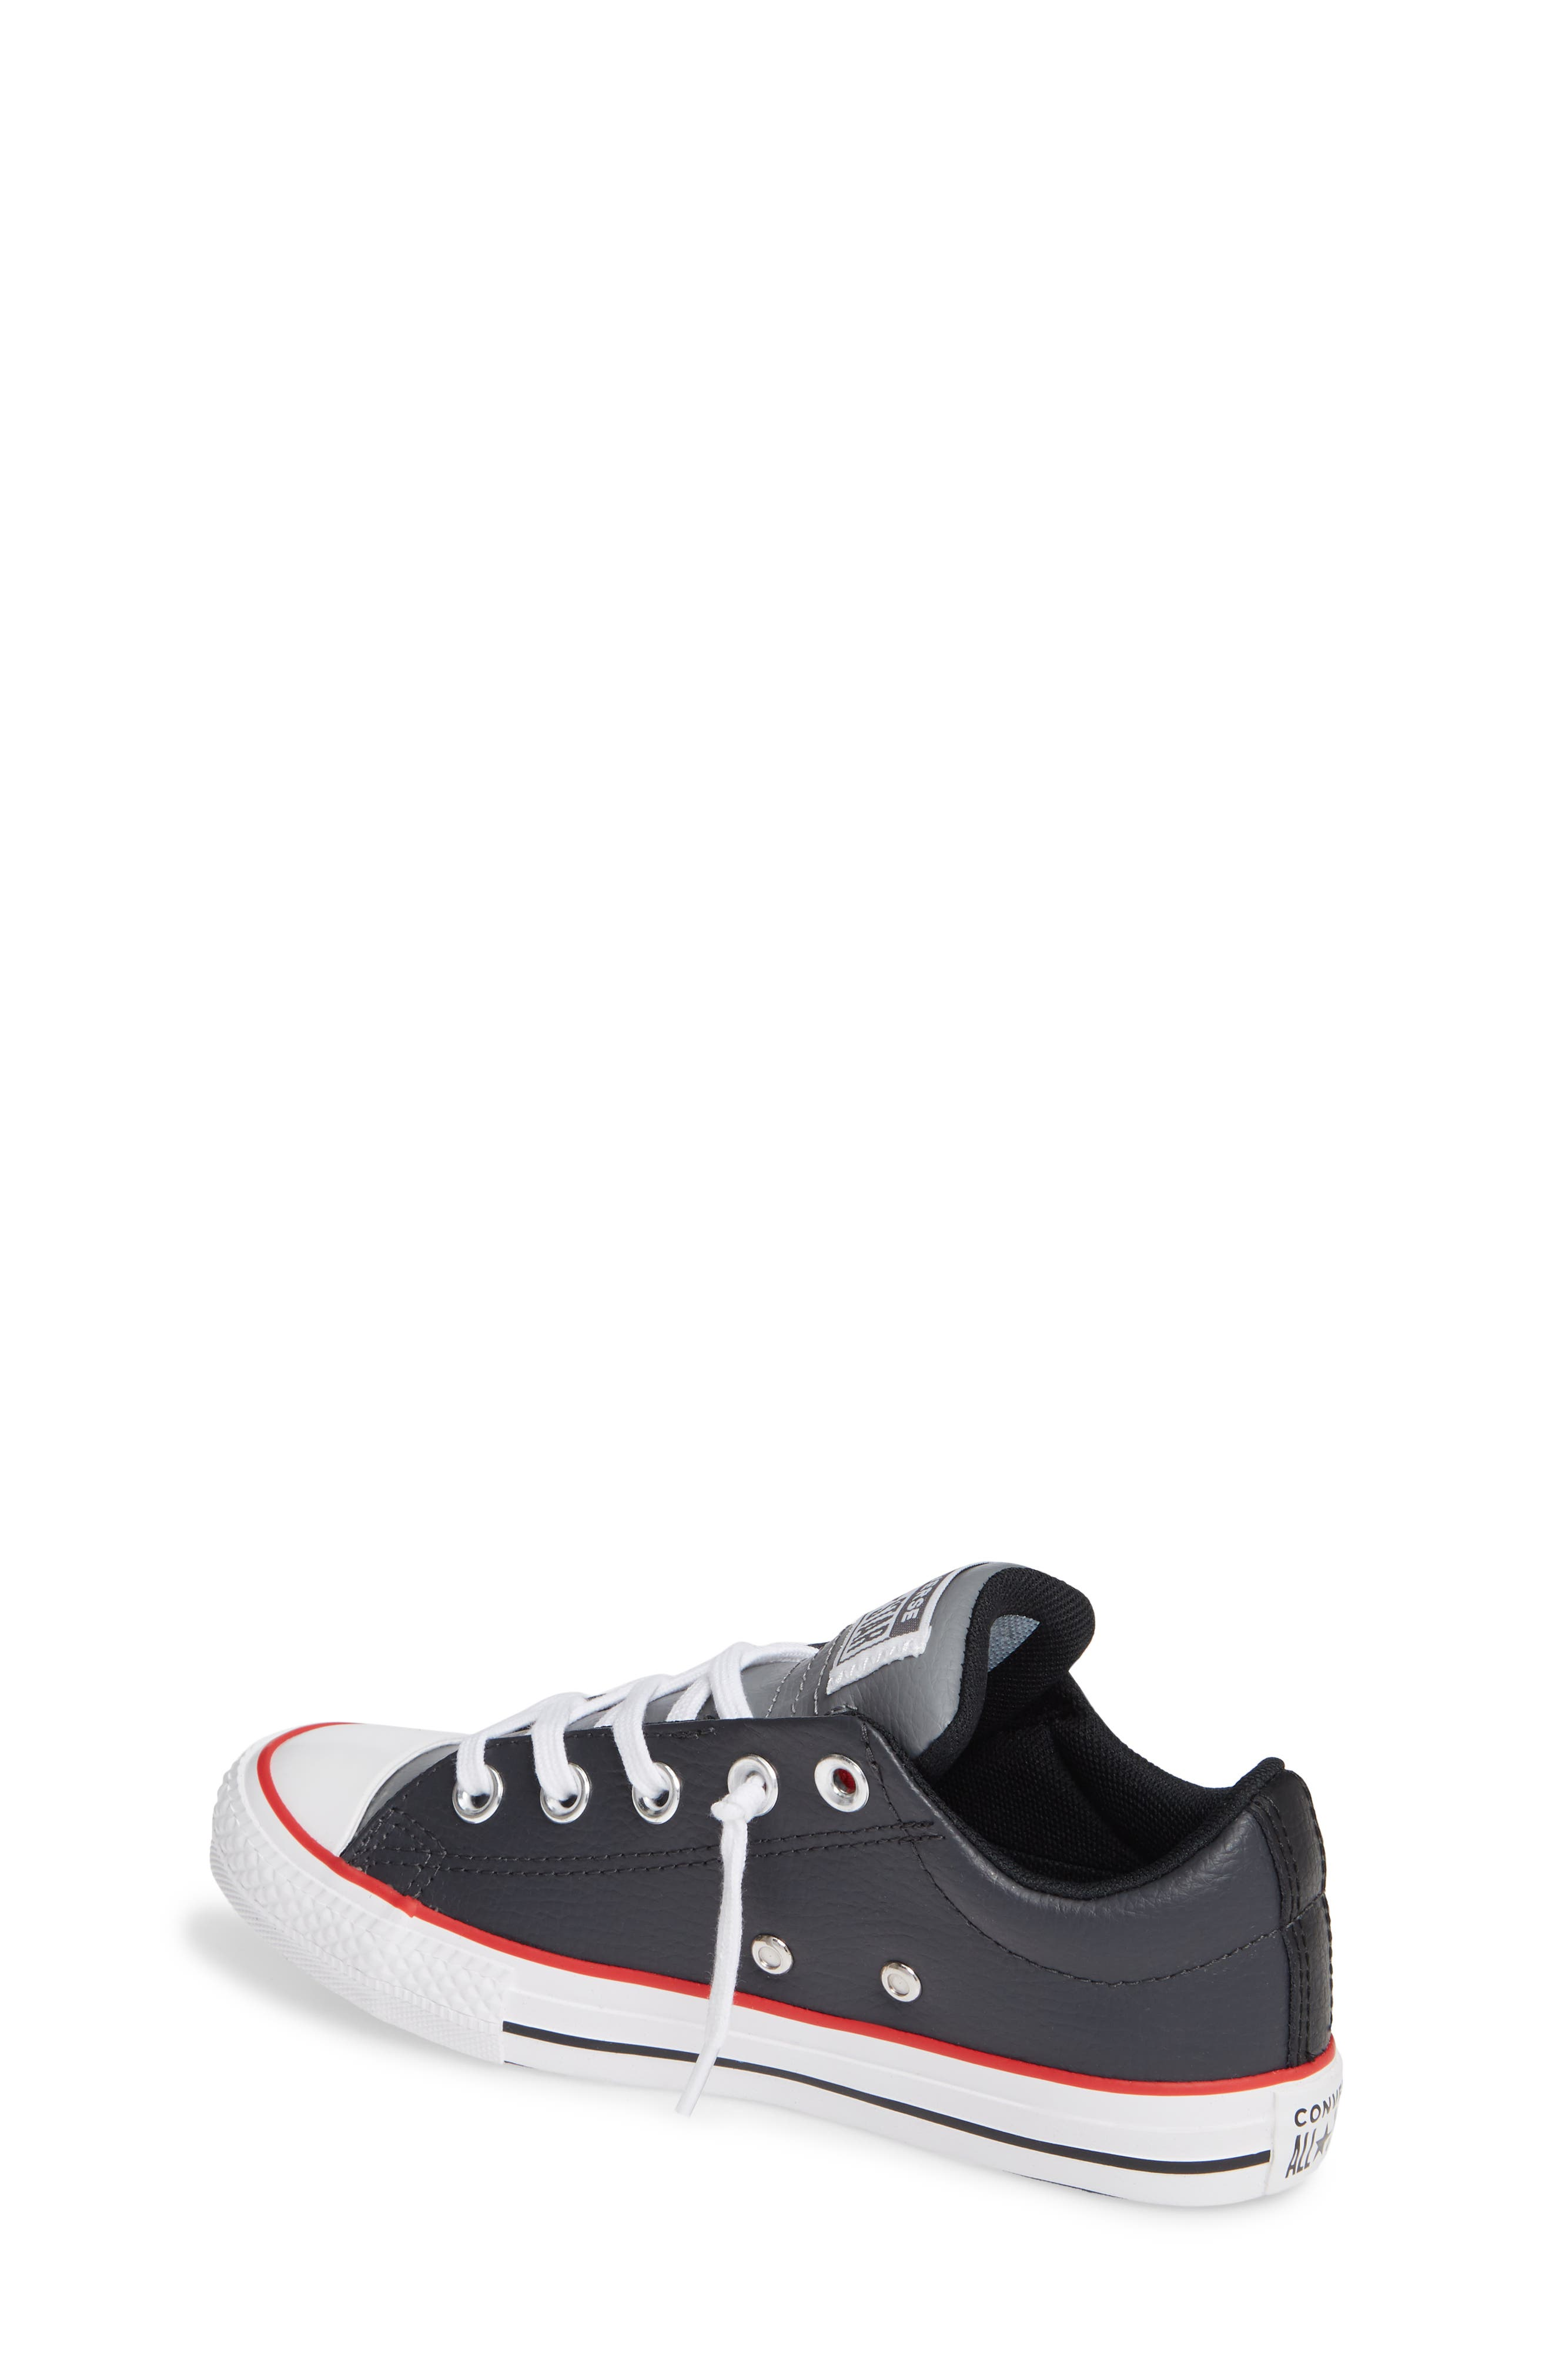 CONVERSE, Chuck Taylor<sup>®</sup> All Star<sup>®</sup> Collegiate Street Leather Slip-On Sneaker, Alternate thumbnail 2, color, ALMOST BLACK